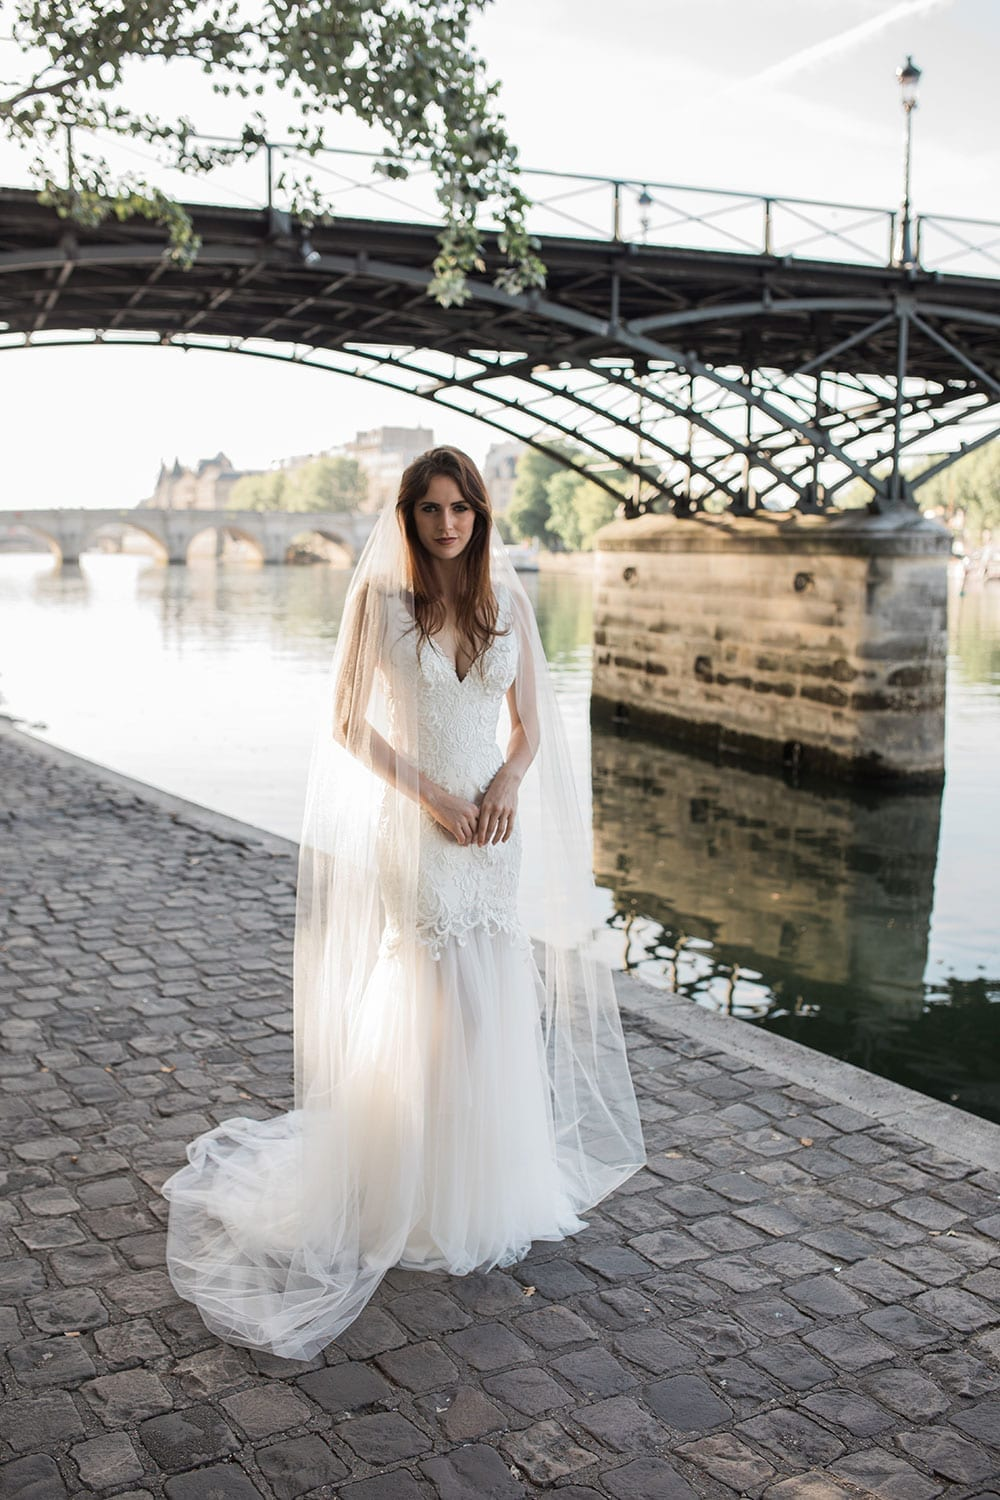 Model wearing Vinka Design Joanna Wedding Dress, a gorgeous wedding dress made with six different laces to create the beautiful bodice detail. The gown is a slim fit with a deep V neck and silk and tulle skirt. Worn next to river in Paris.